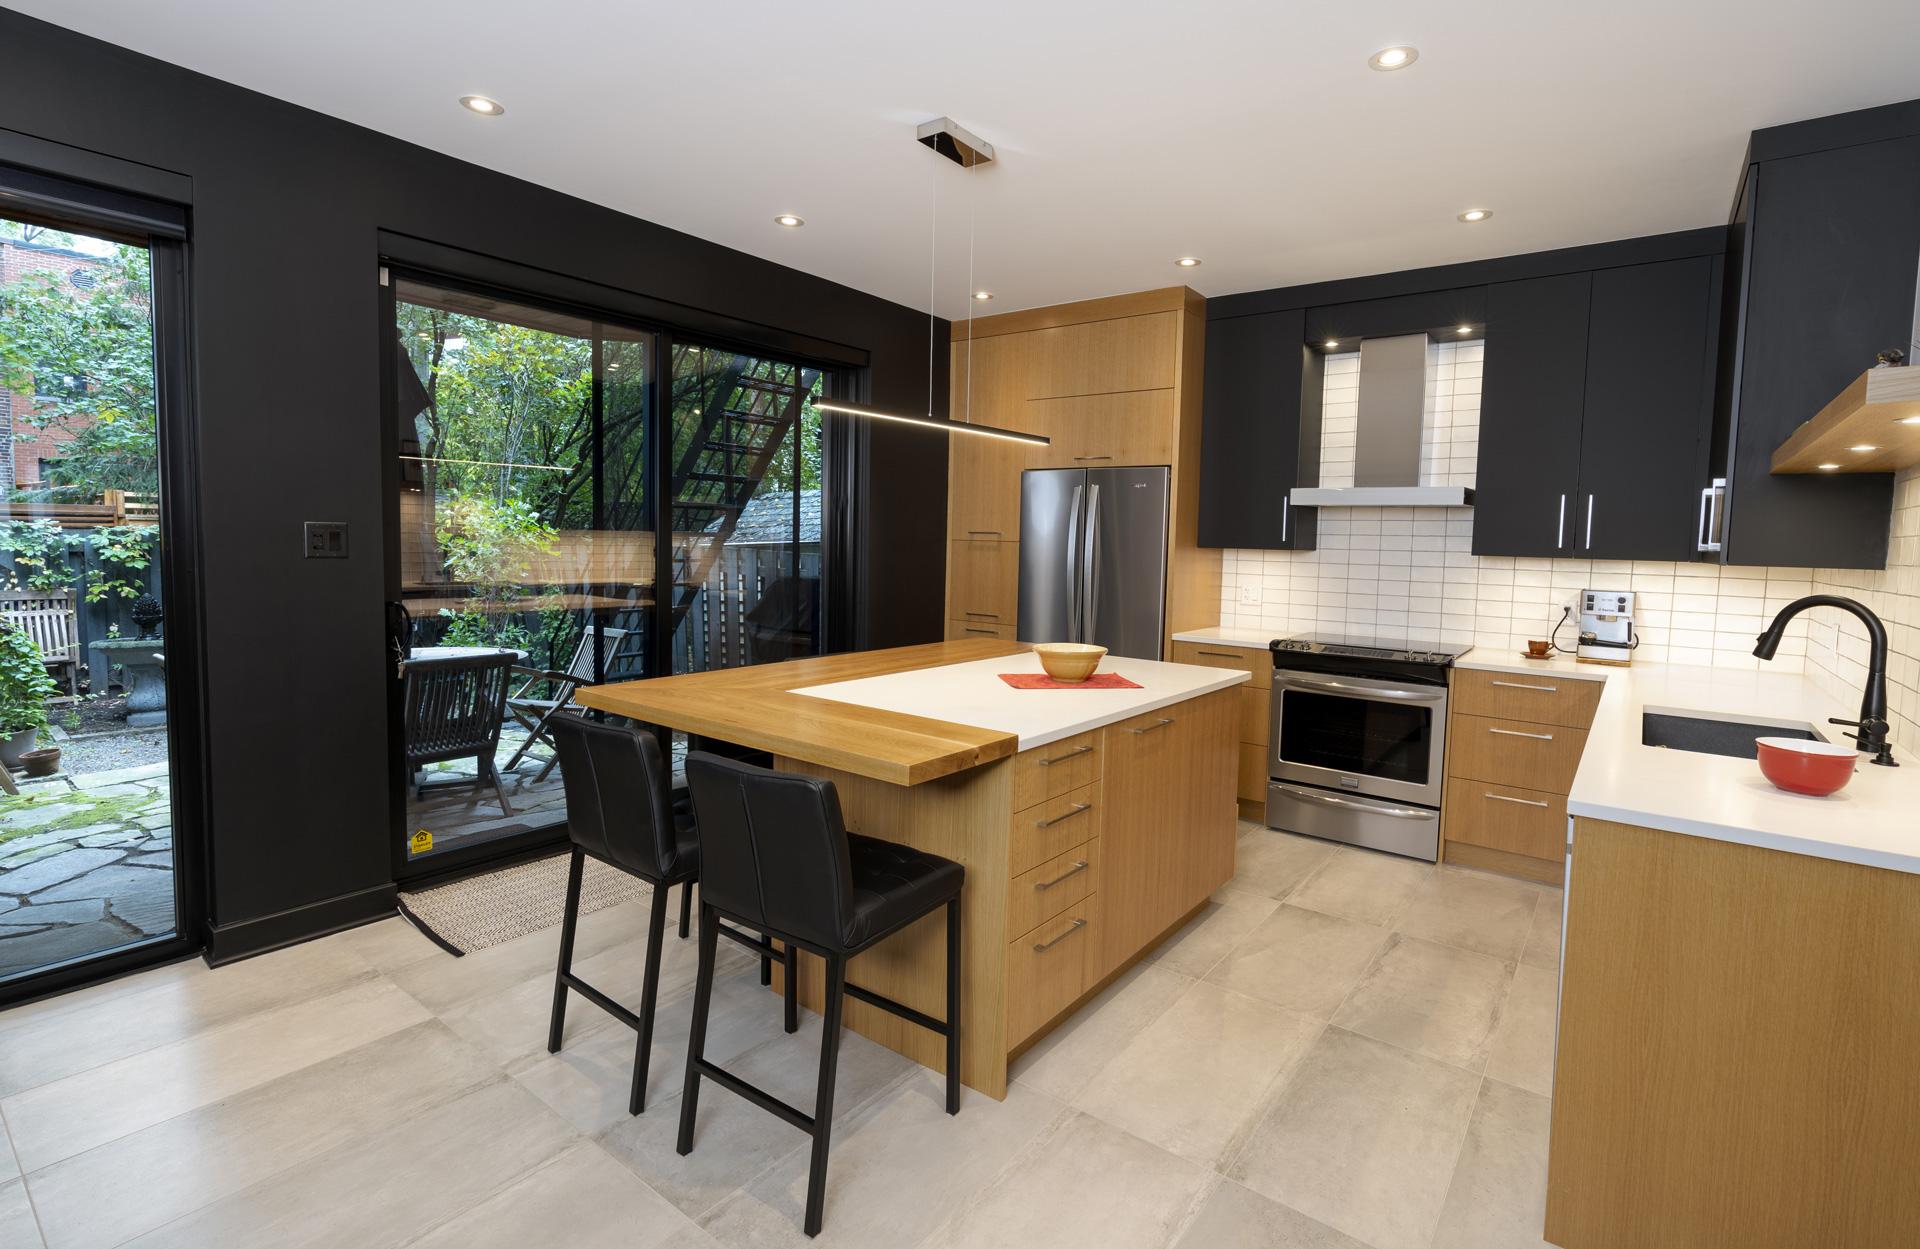 Modern kitchen with renovated breakfast area to improve living space